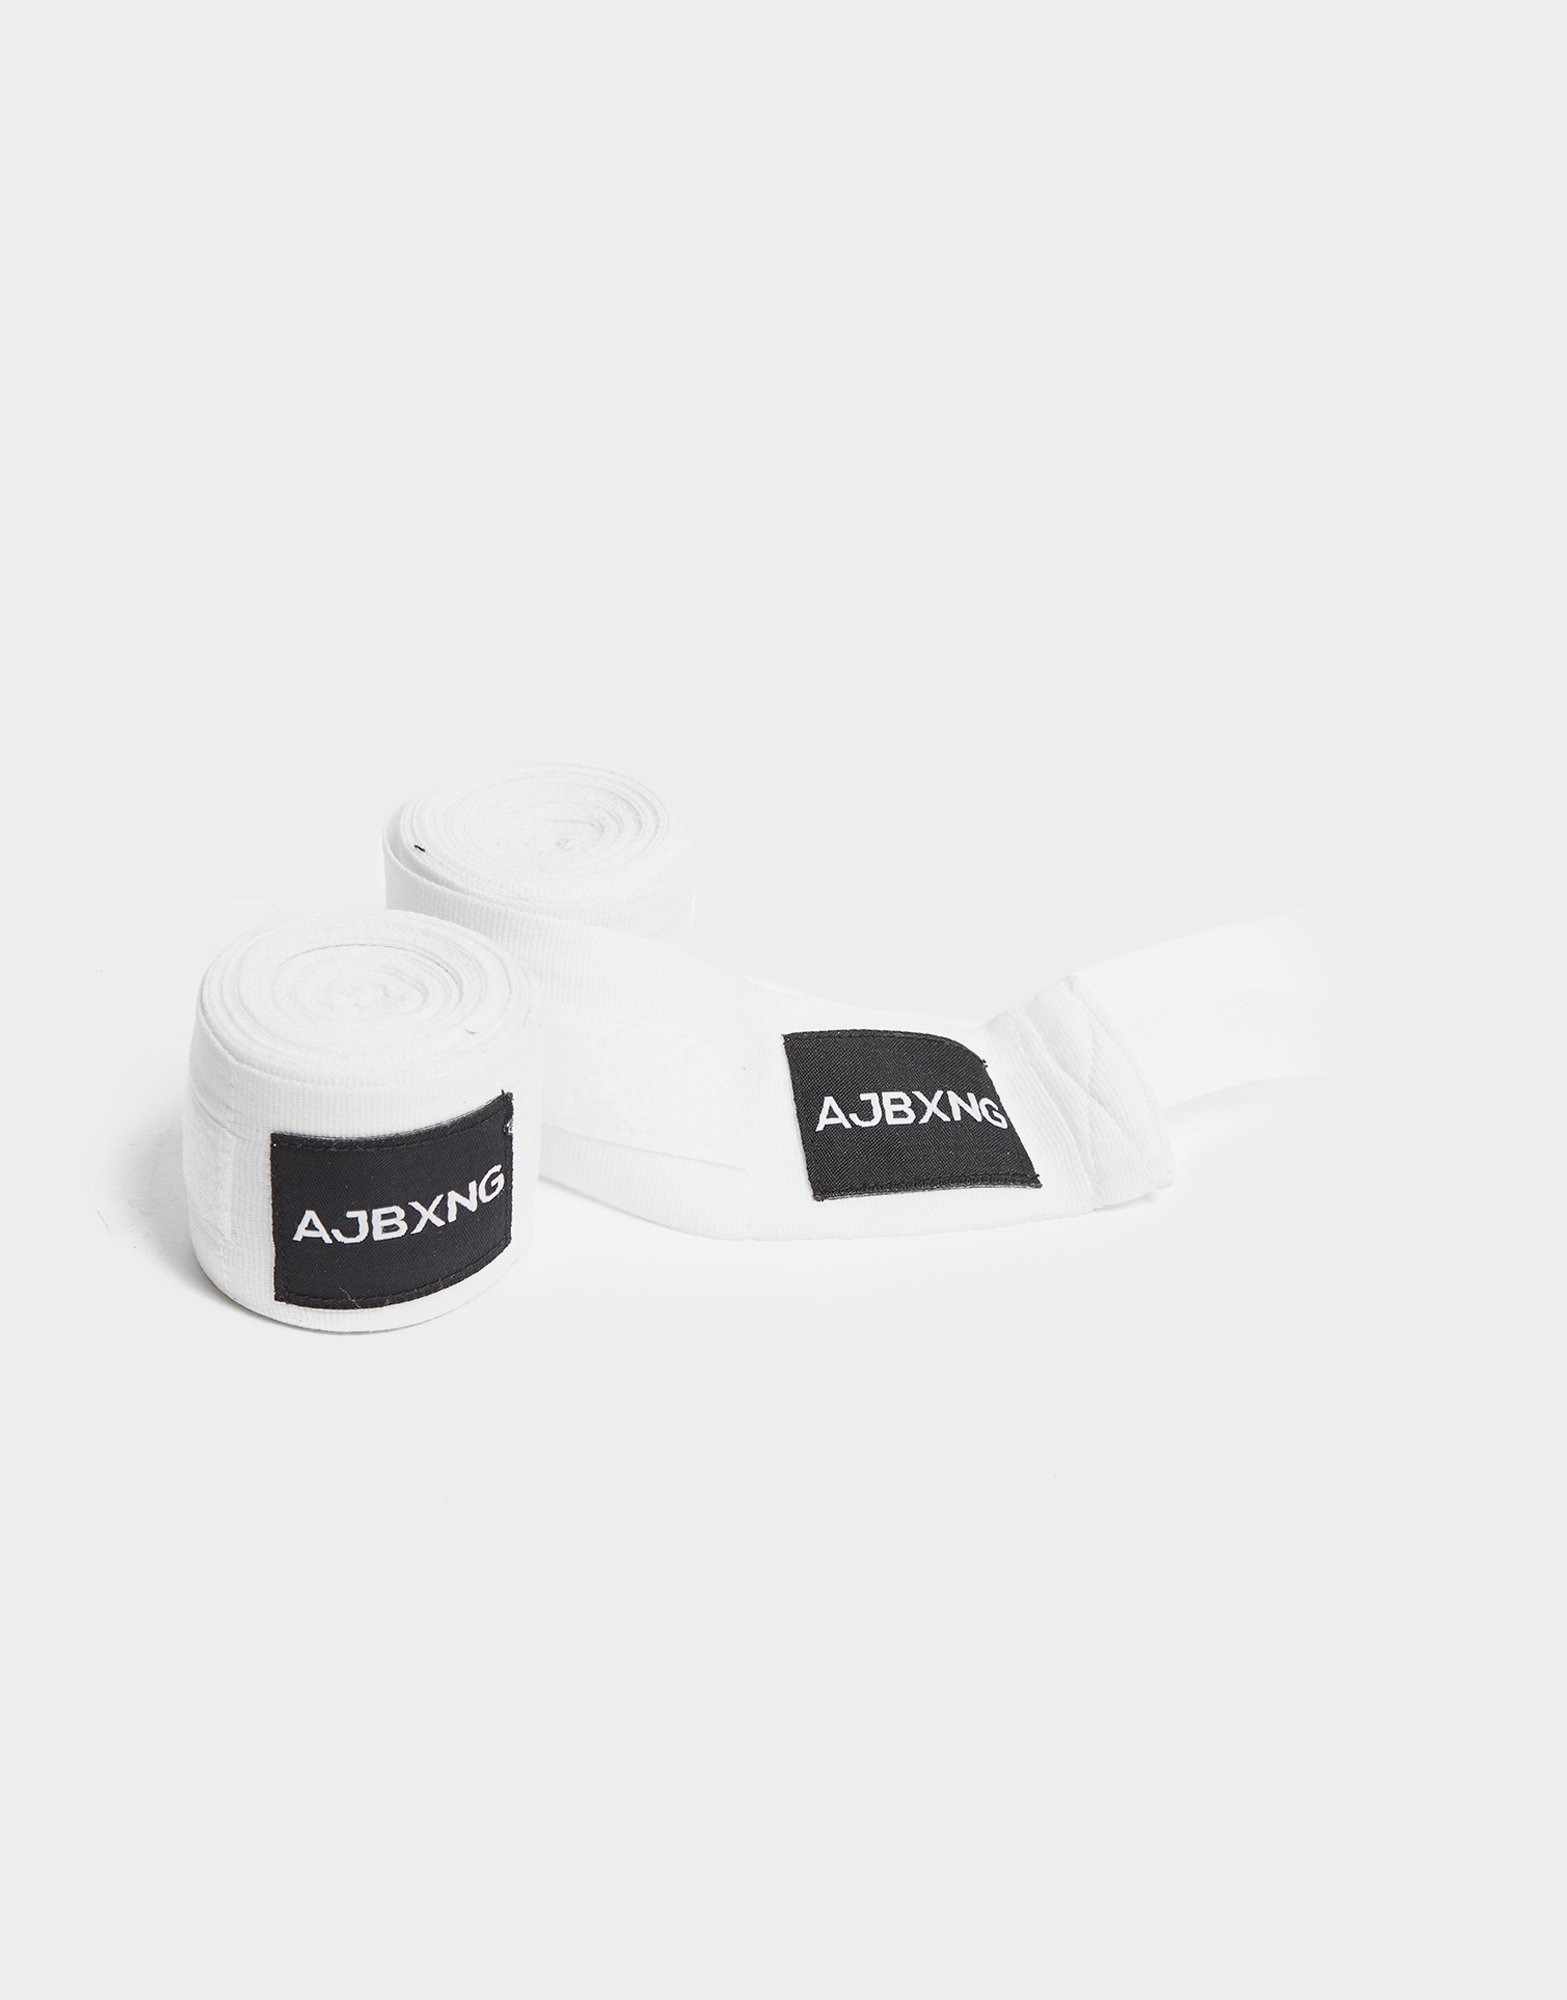 Buy Ajbxng Wraps Jd Sports